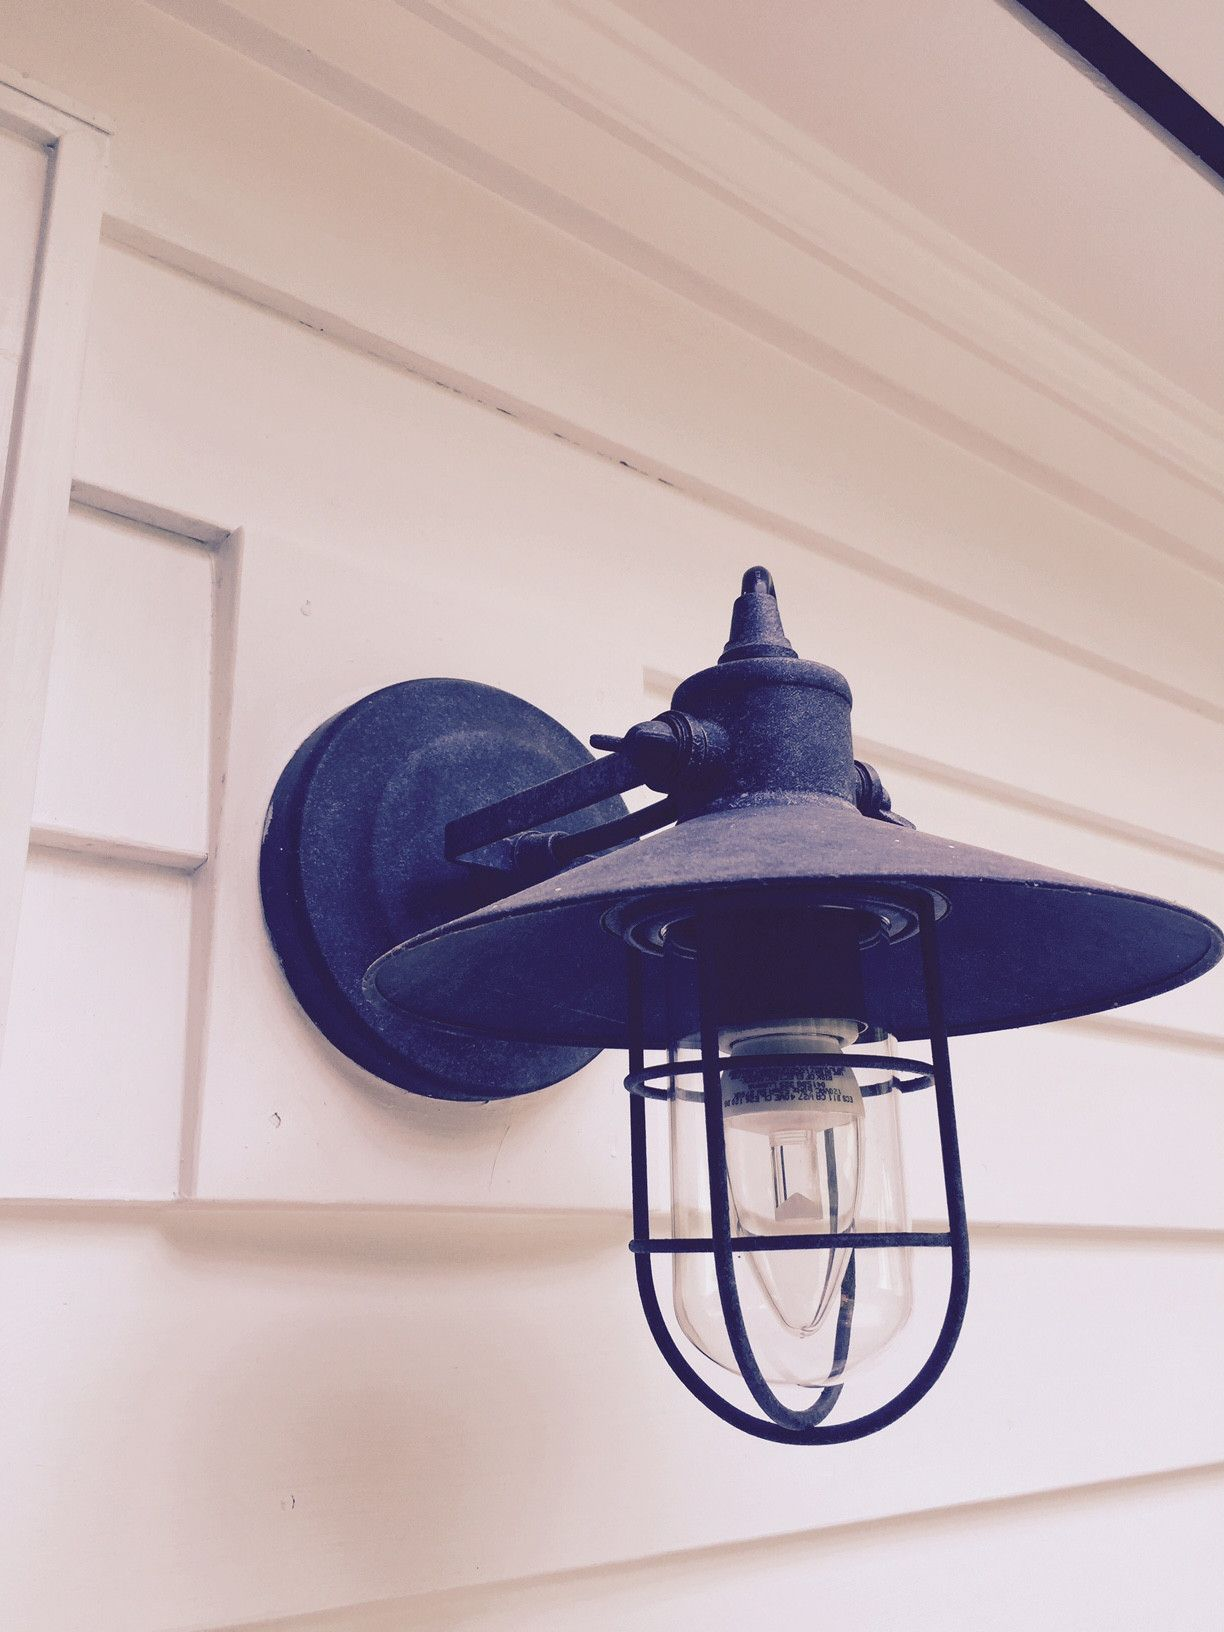 Image Result For Exterior Lights Direct To Siding No Block